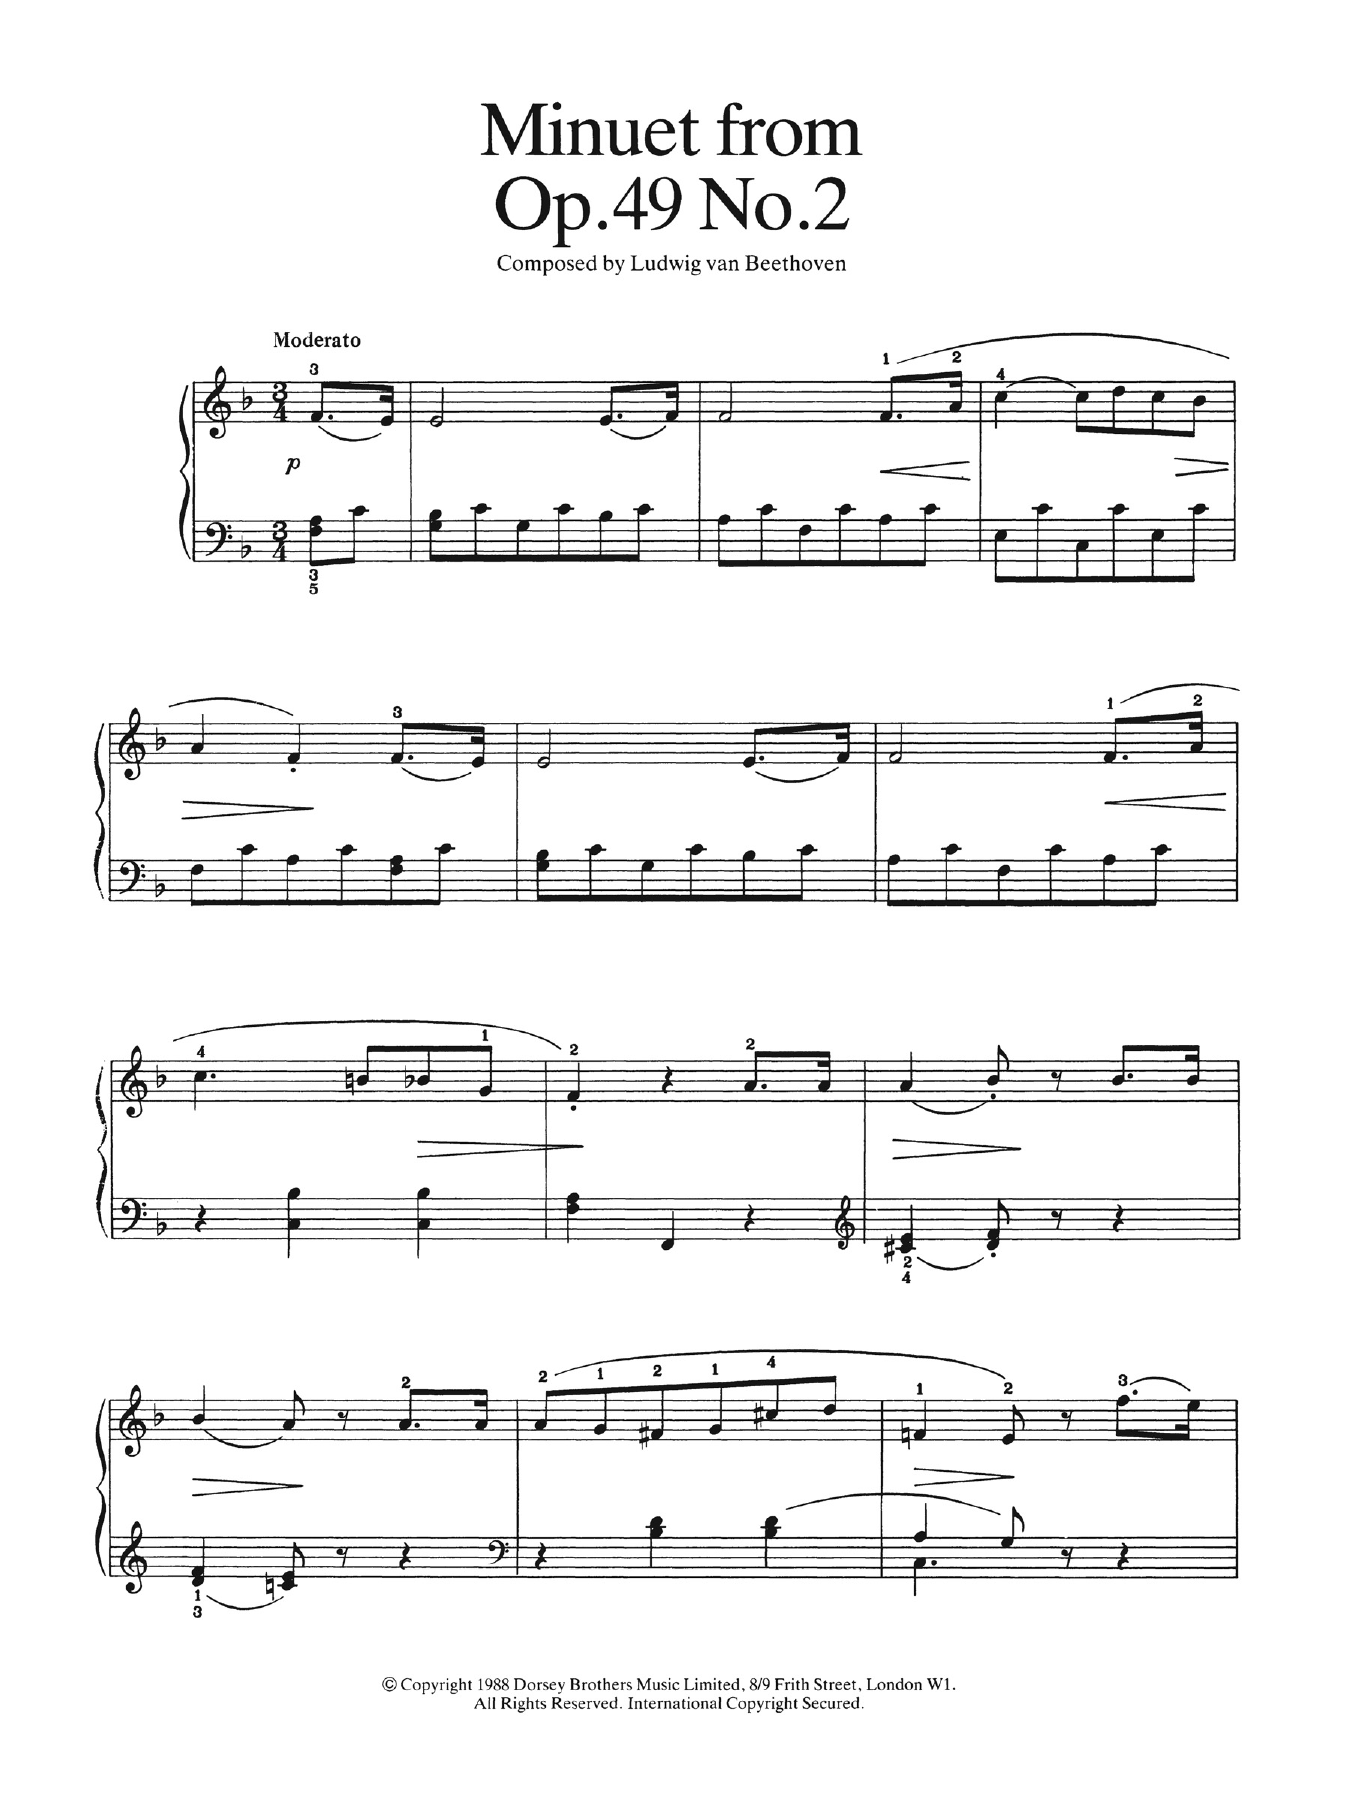 Minuet from Op  49, No 2 by Ludwig van Beethoven Easy Piano Digital Sheet  Music